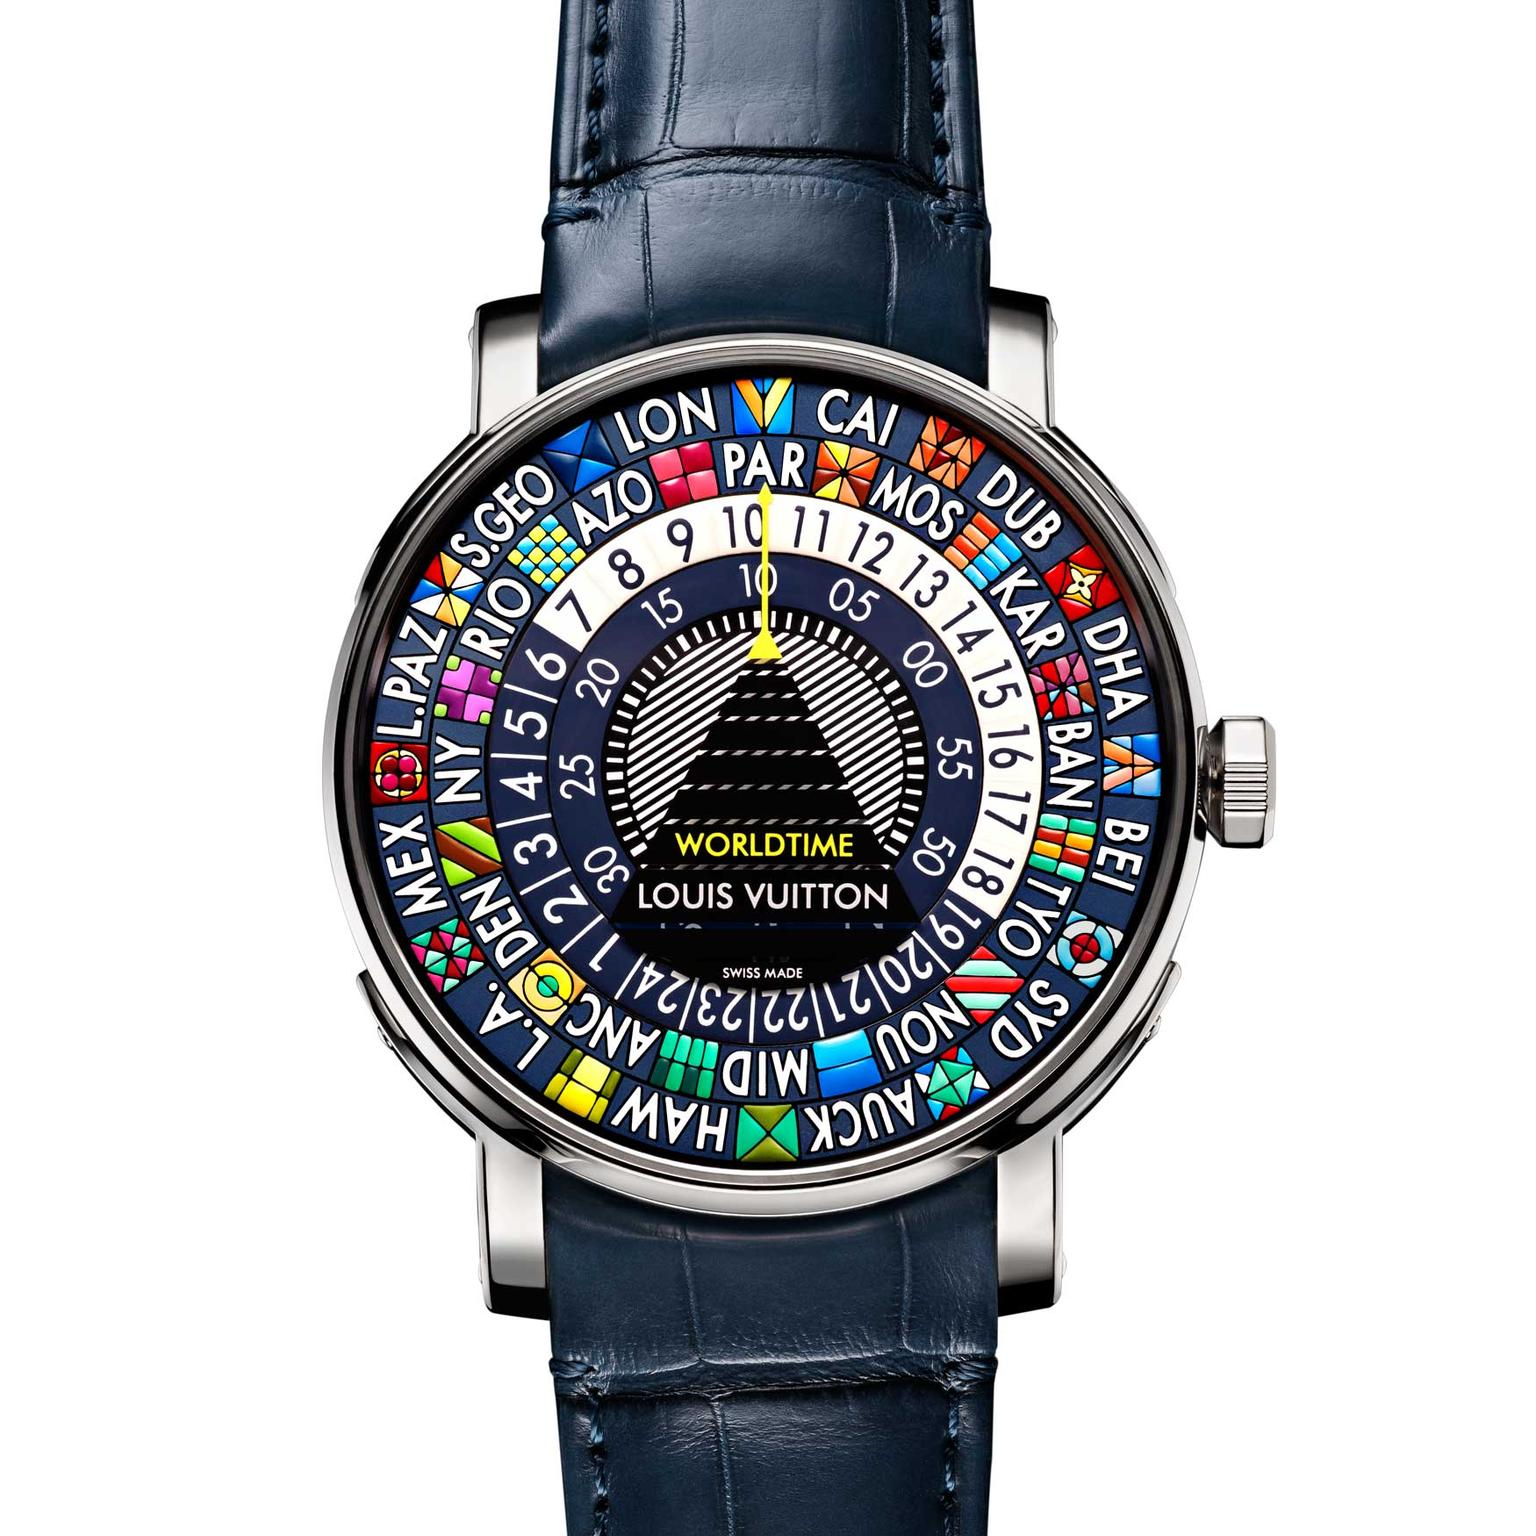 Louis Vuitton Escale Worldtime Blue watch with leather strap